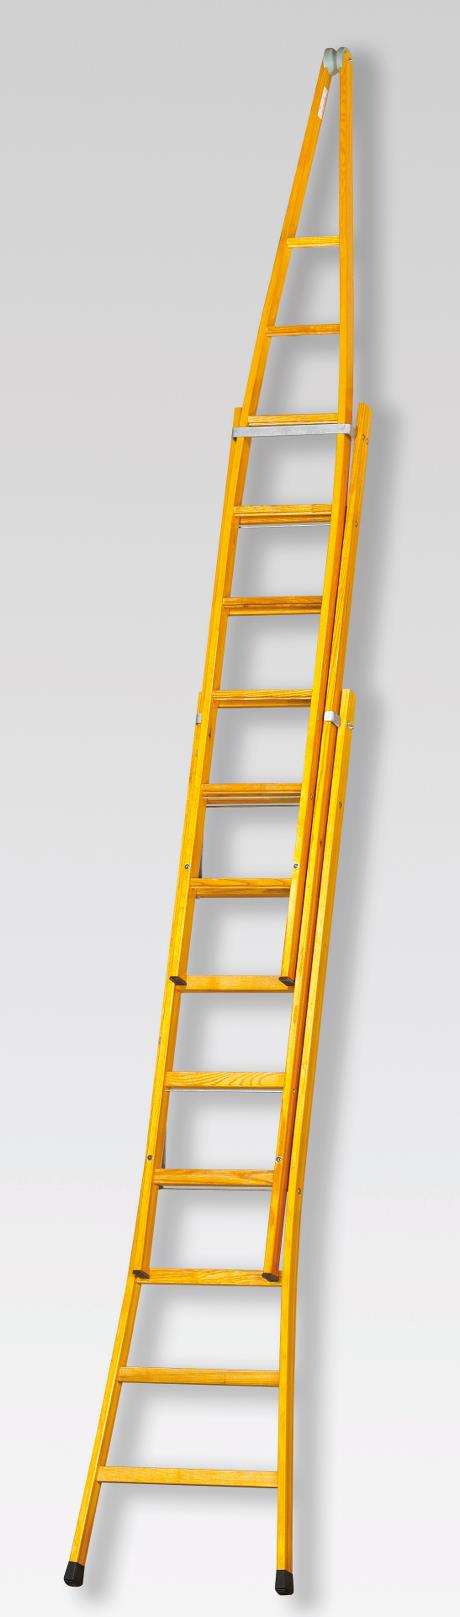 Pointed extension ladder 3x8 rungs - 6.35 m